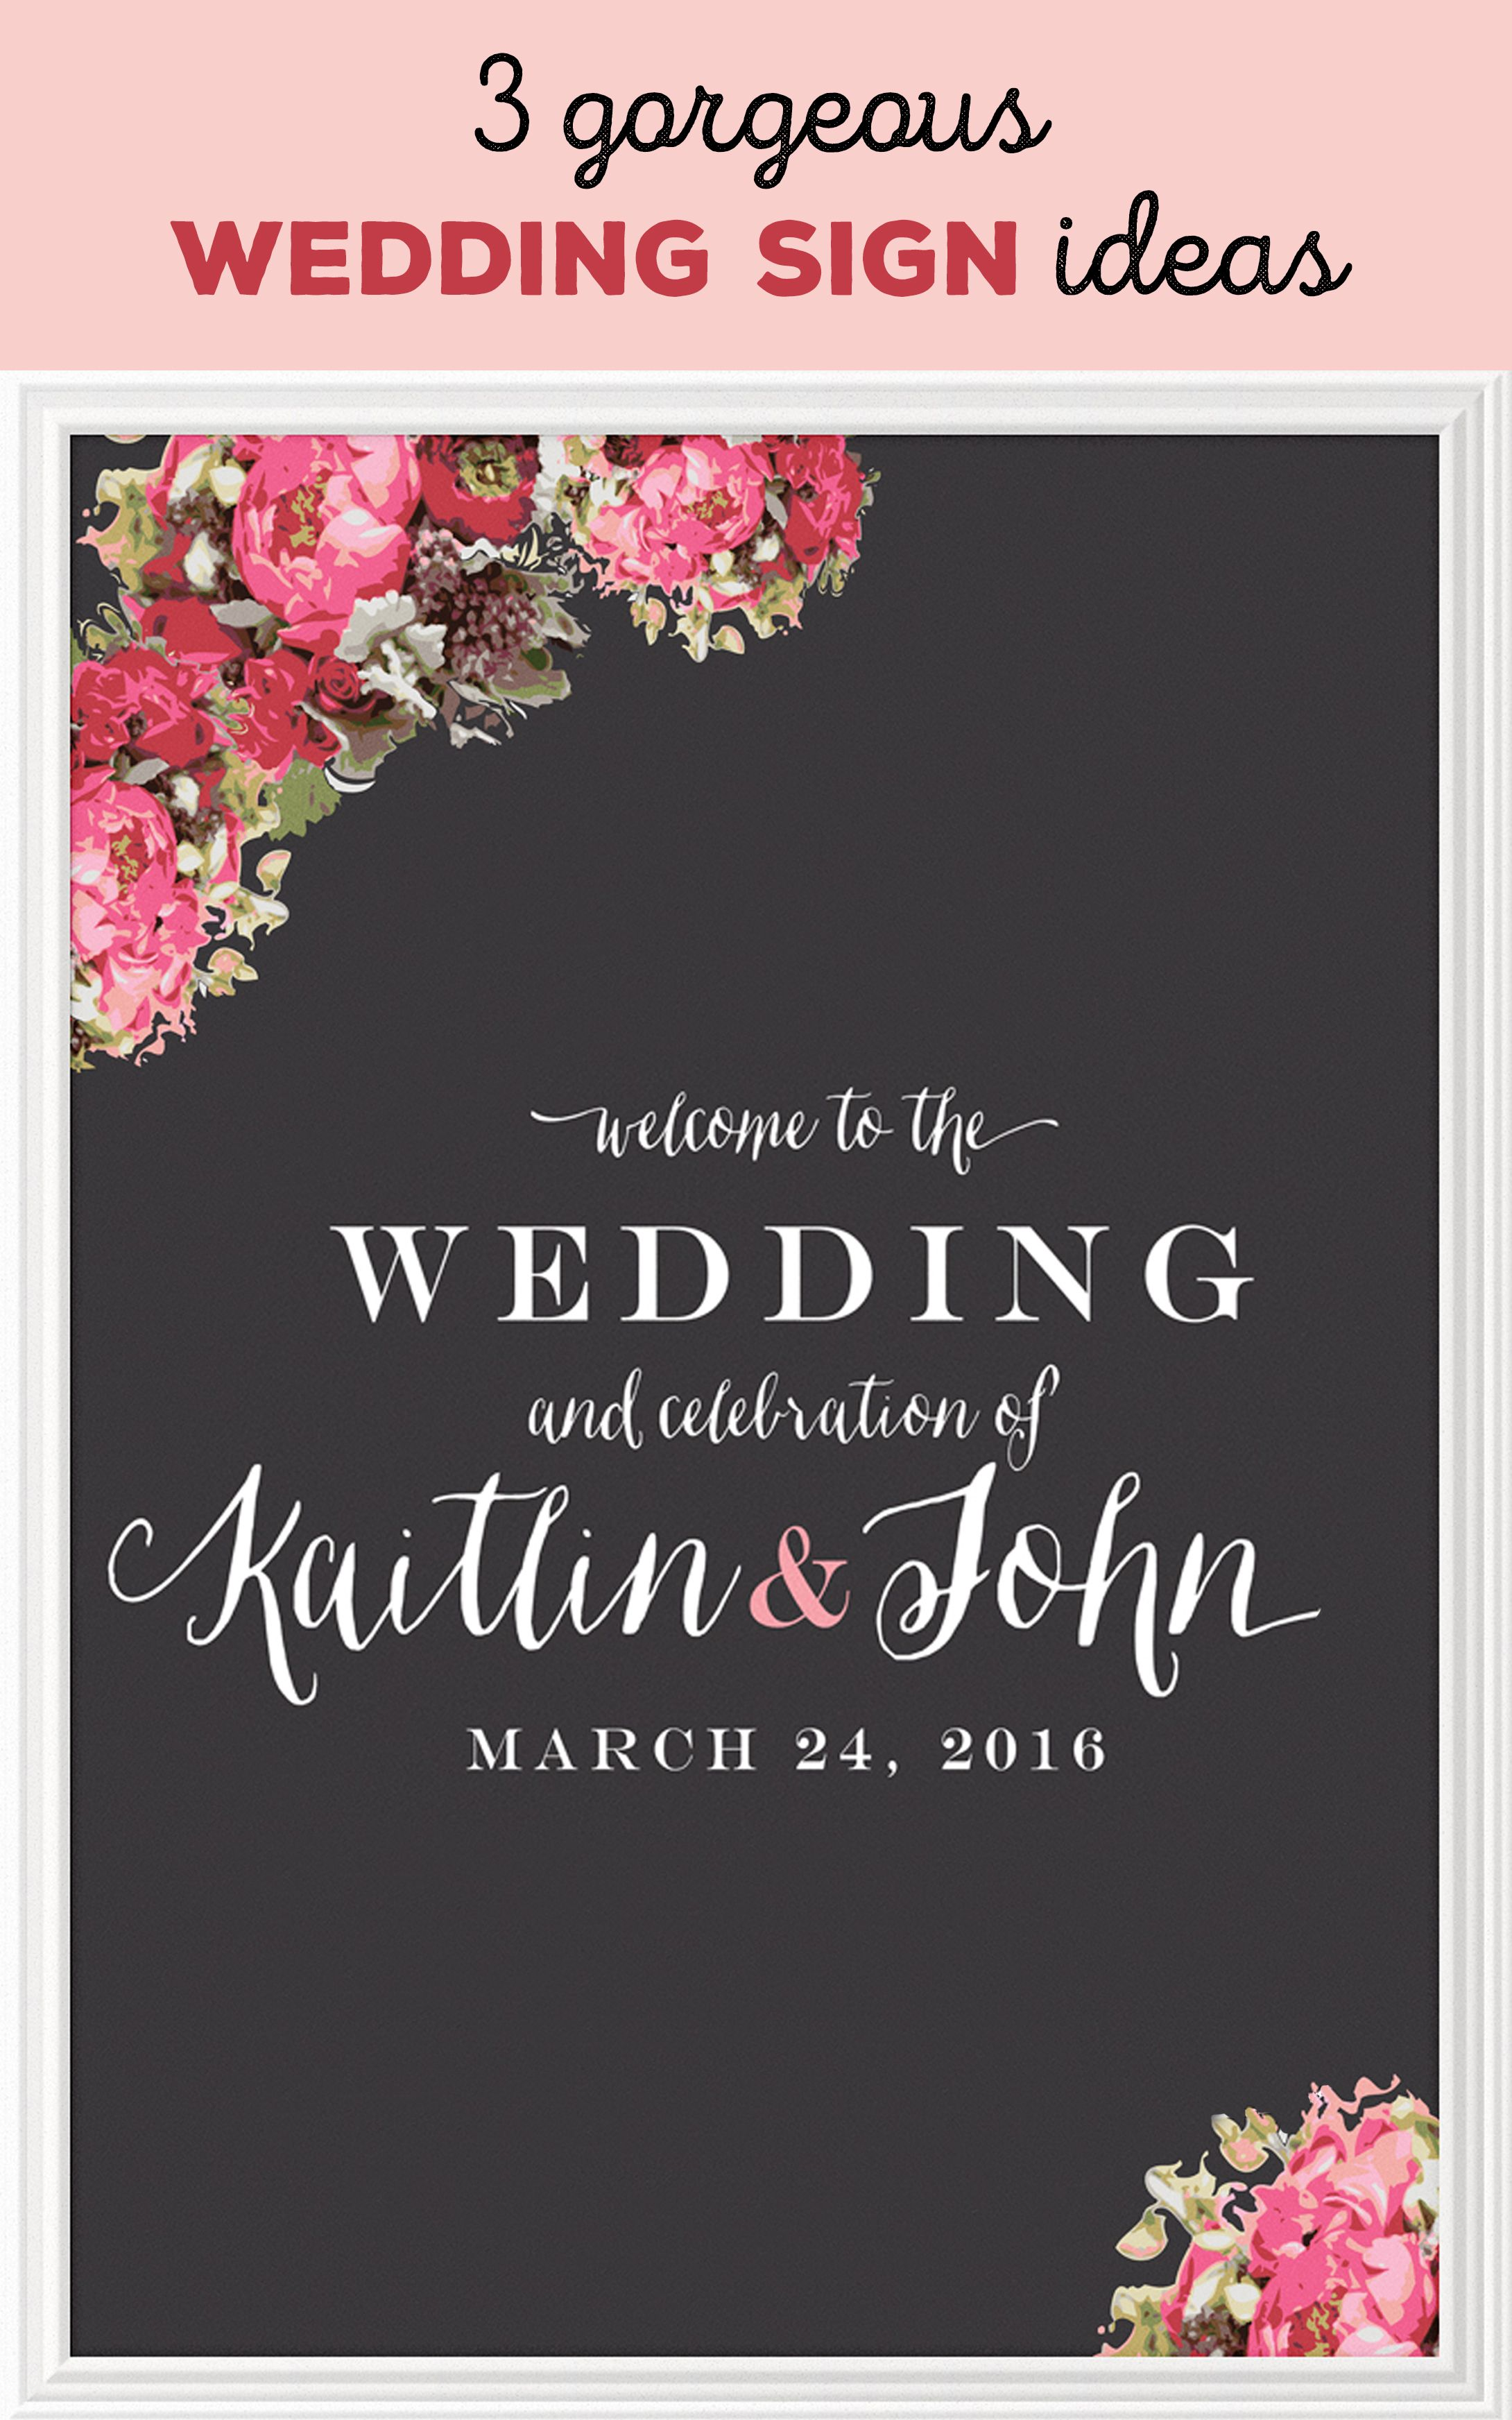 A Fl Motif Keeps Things Clic On This Wedding Sign Or Welcome Board While